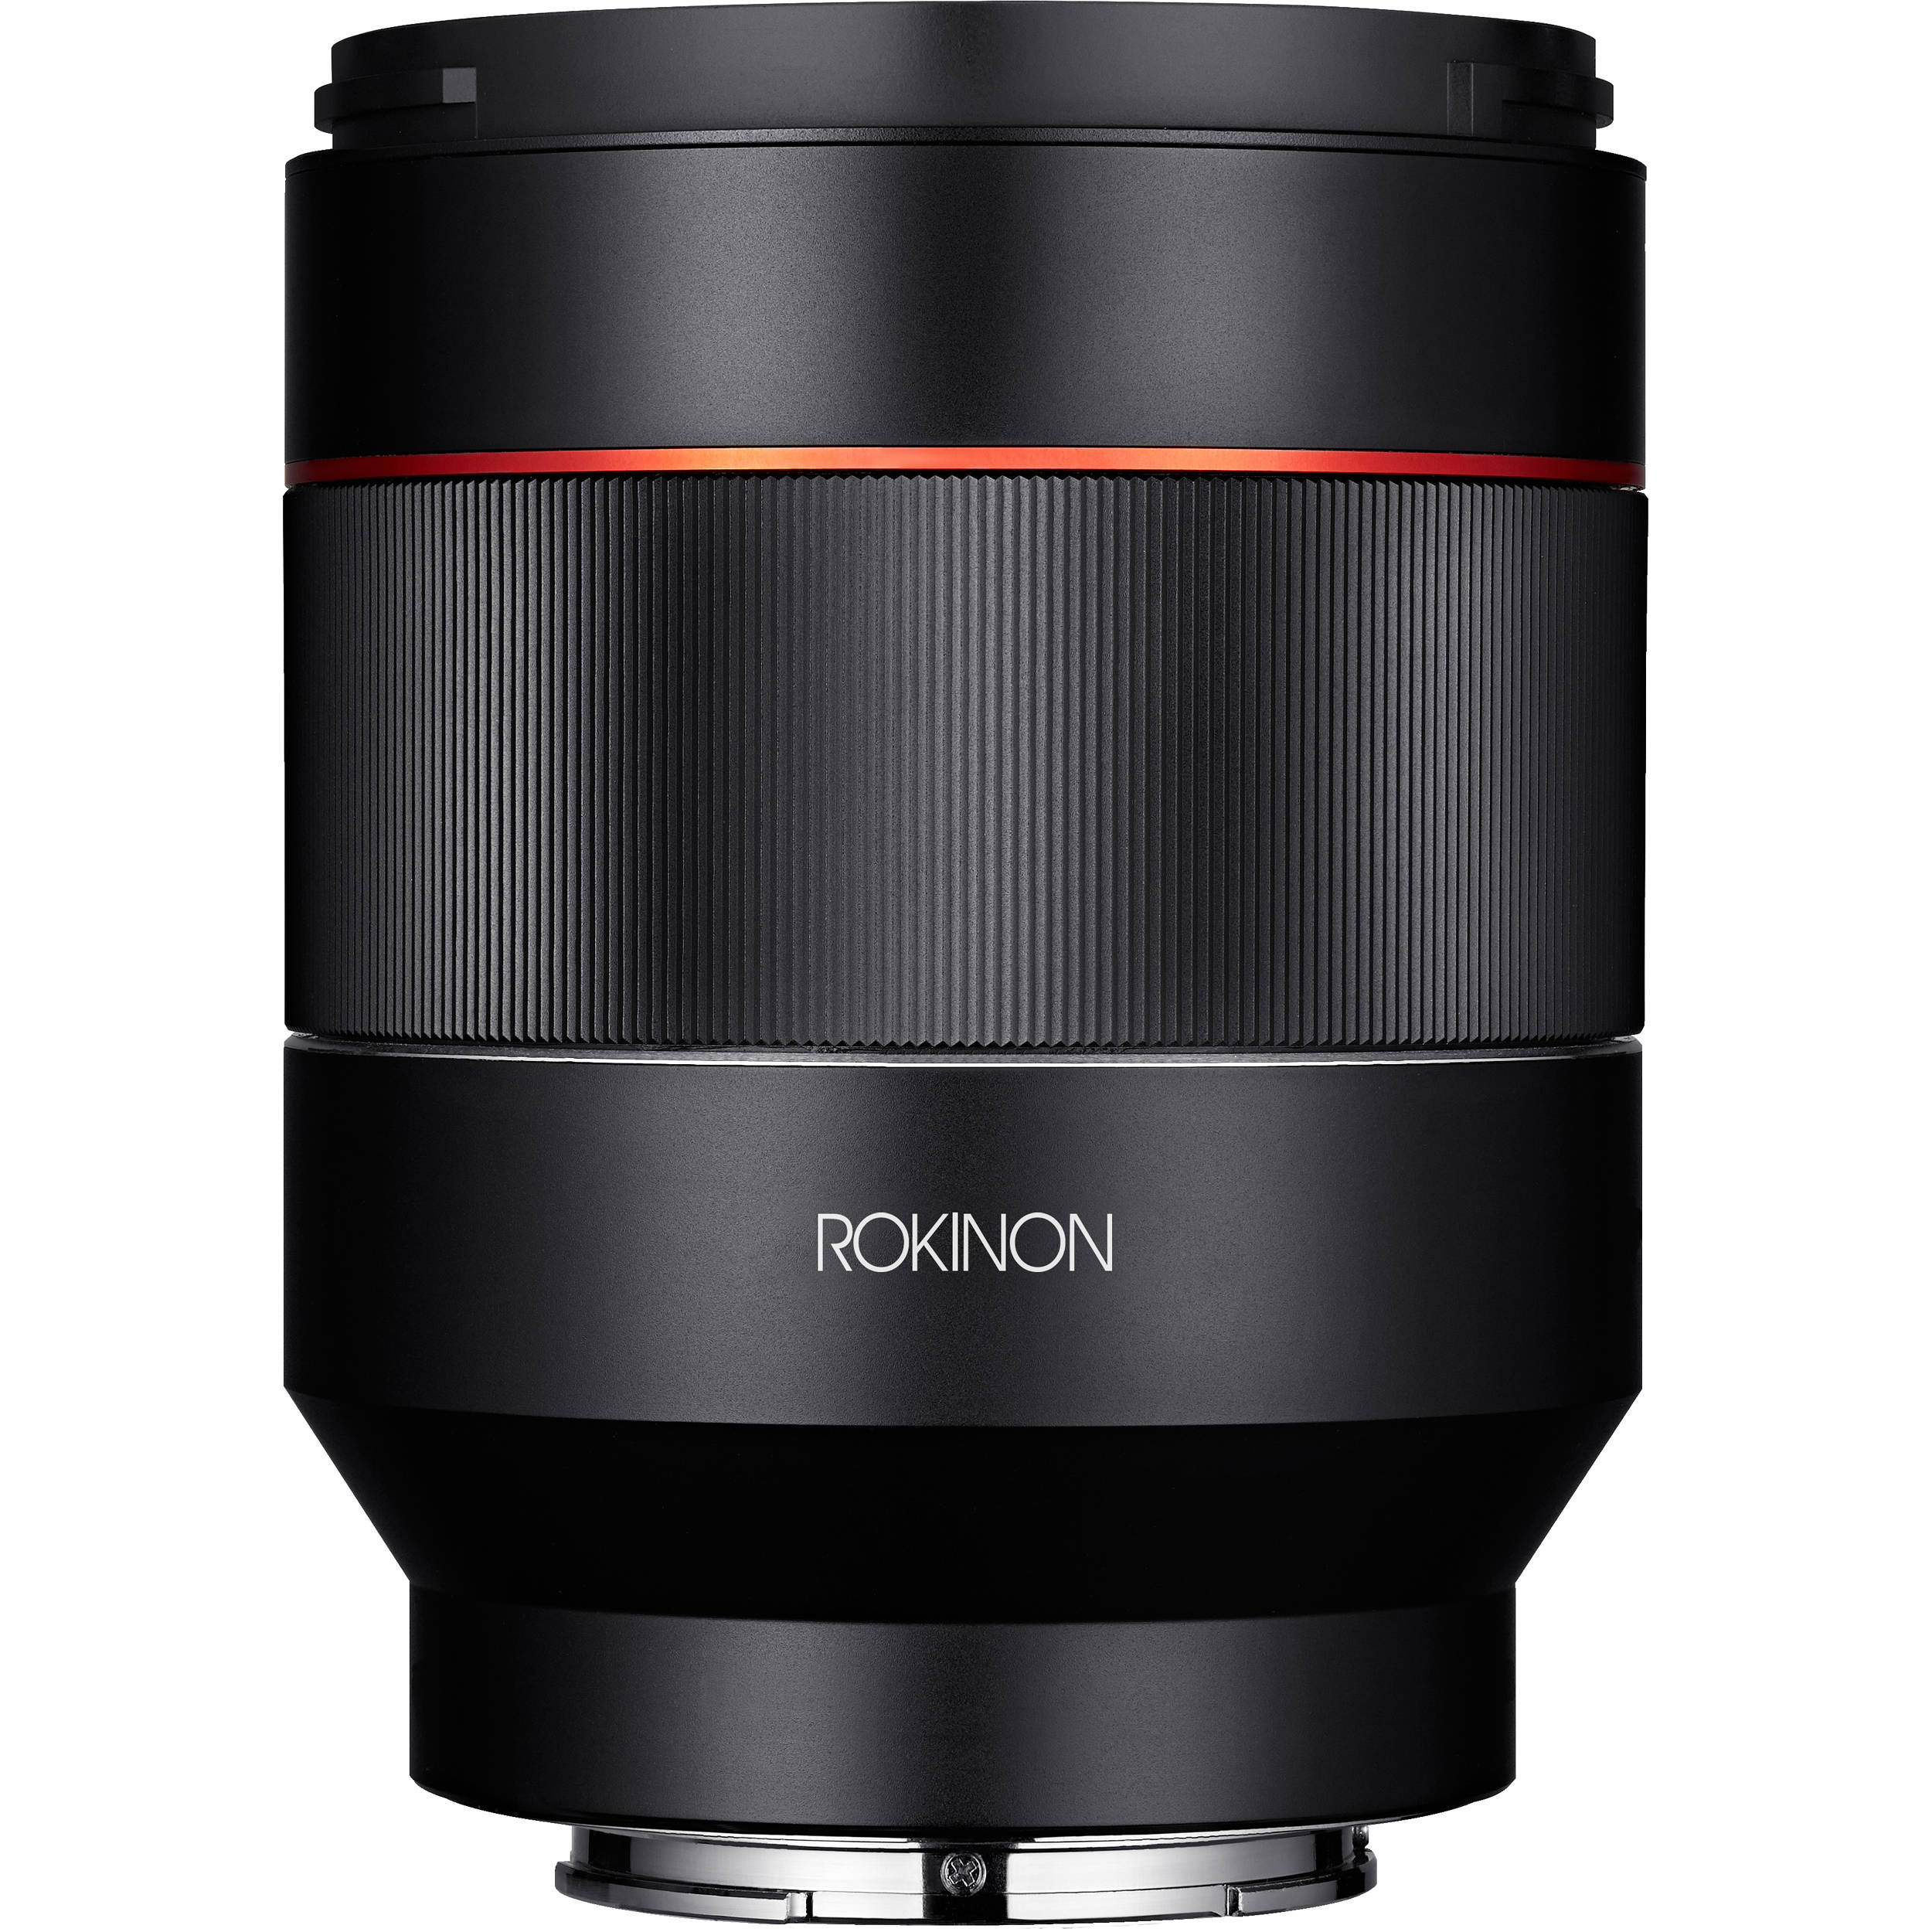 sony 50mm 1 4. rokinon af 50mm f/1.4 fe lens for sony e 1 4 f